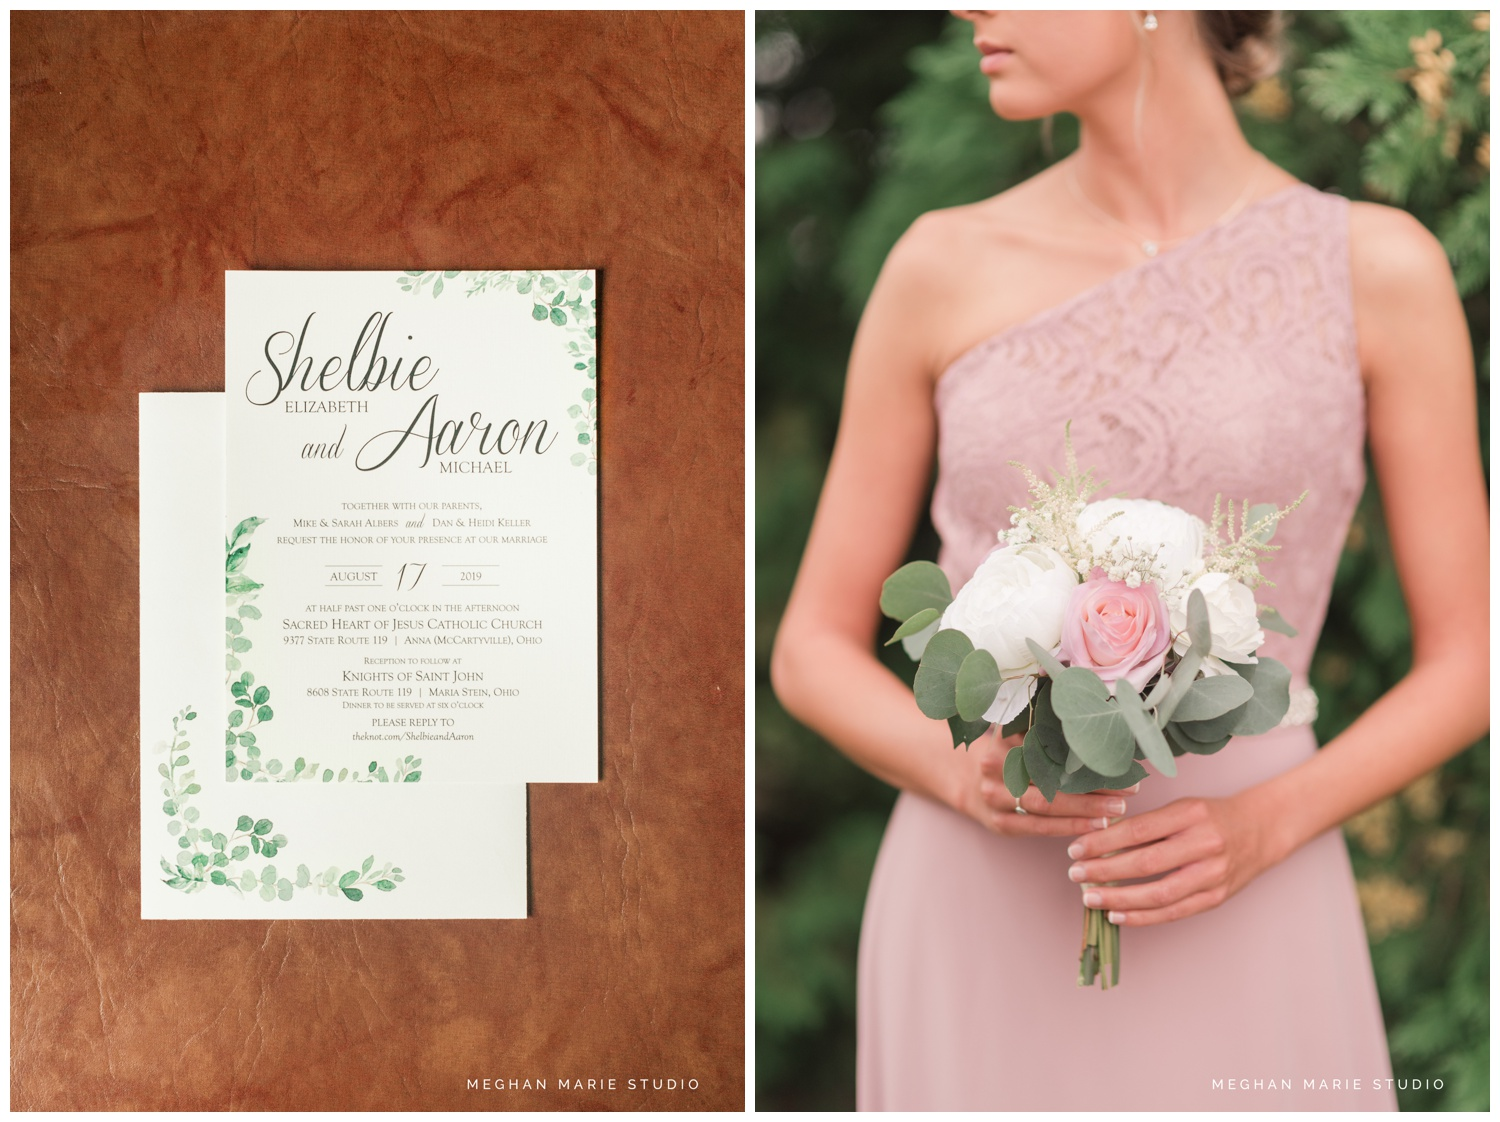 meghan marie studio wedding photographer ohio troy dayton columbus small town rustic rural farm cows vintage mauves dusty rose pinks whites ivorys grays f1 sound paper lanterns pearls_0575.jpg